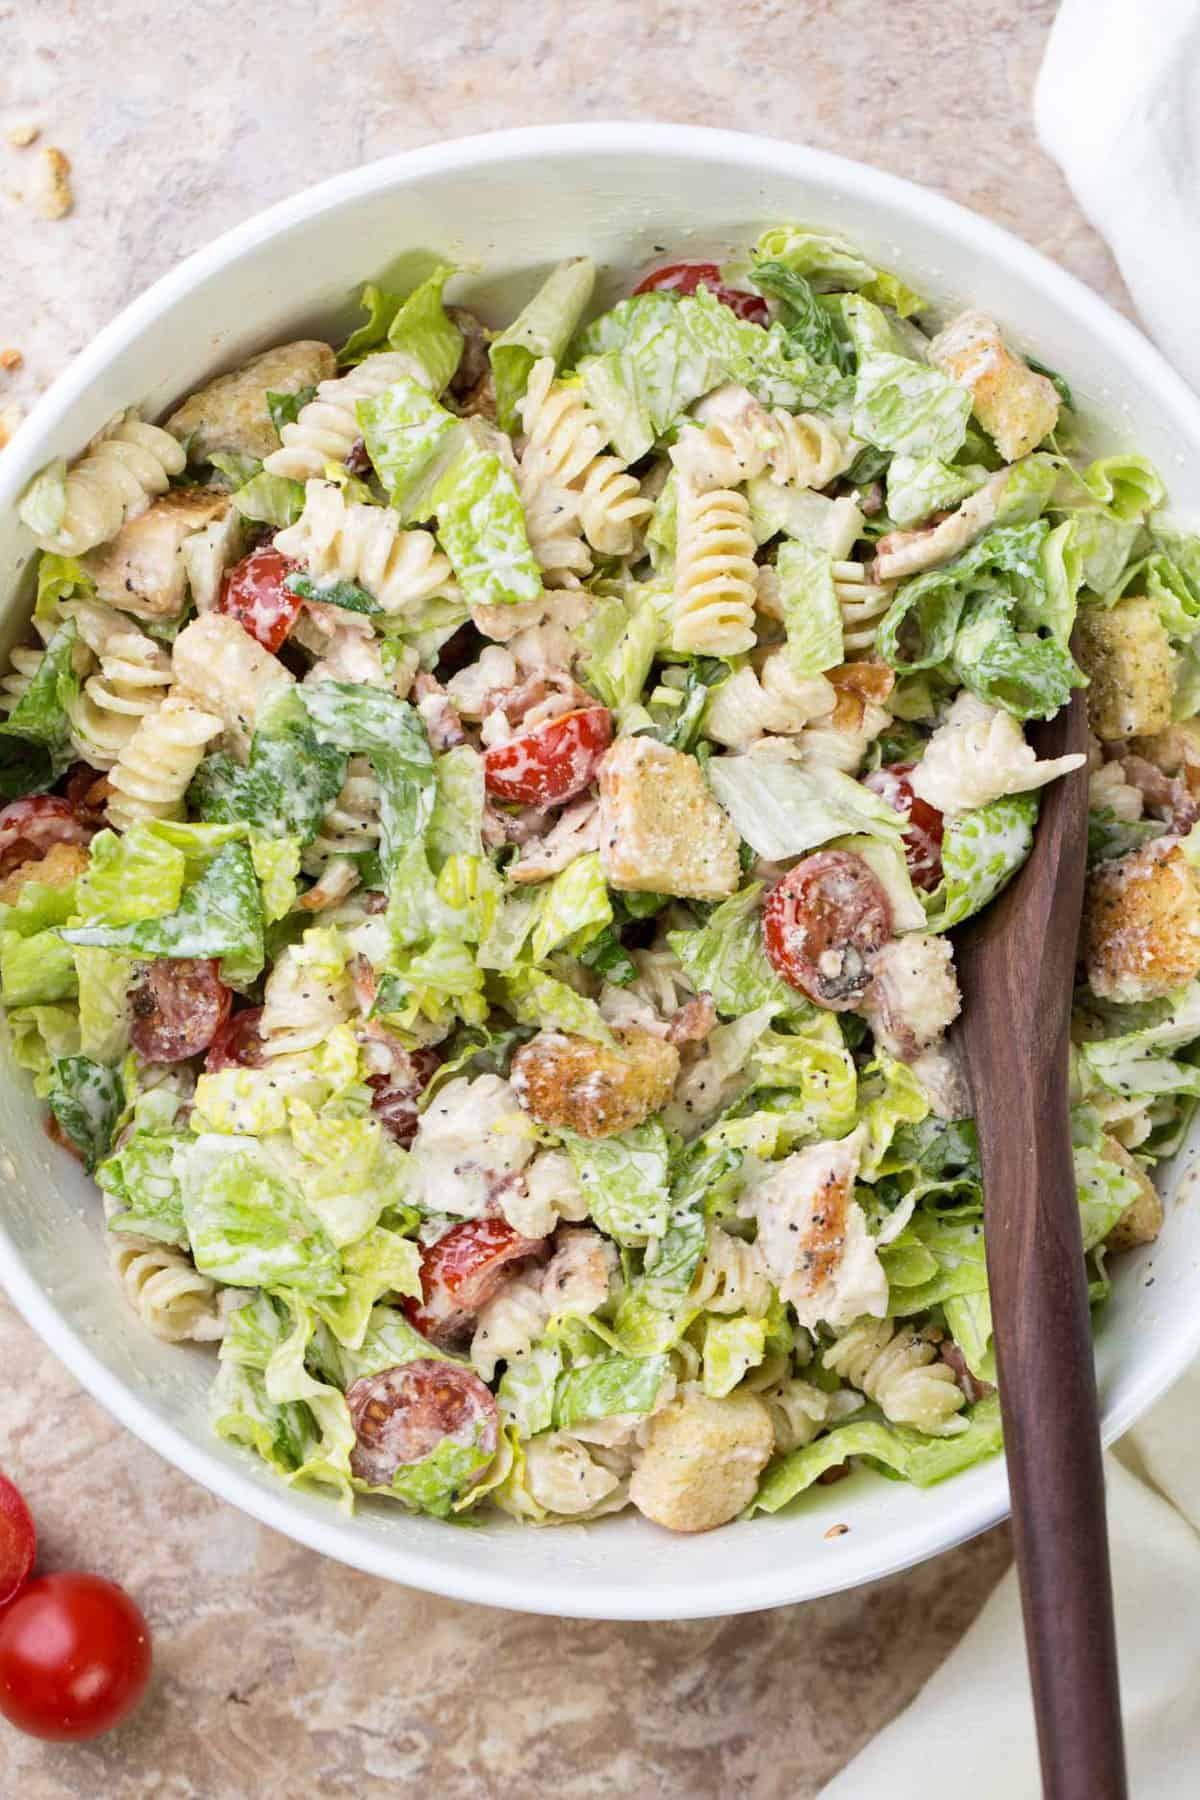 Pasta chicken Caesar salad recipe with a homemade Caesar salad dressing.